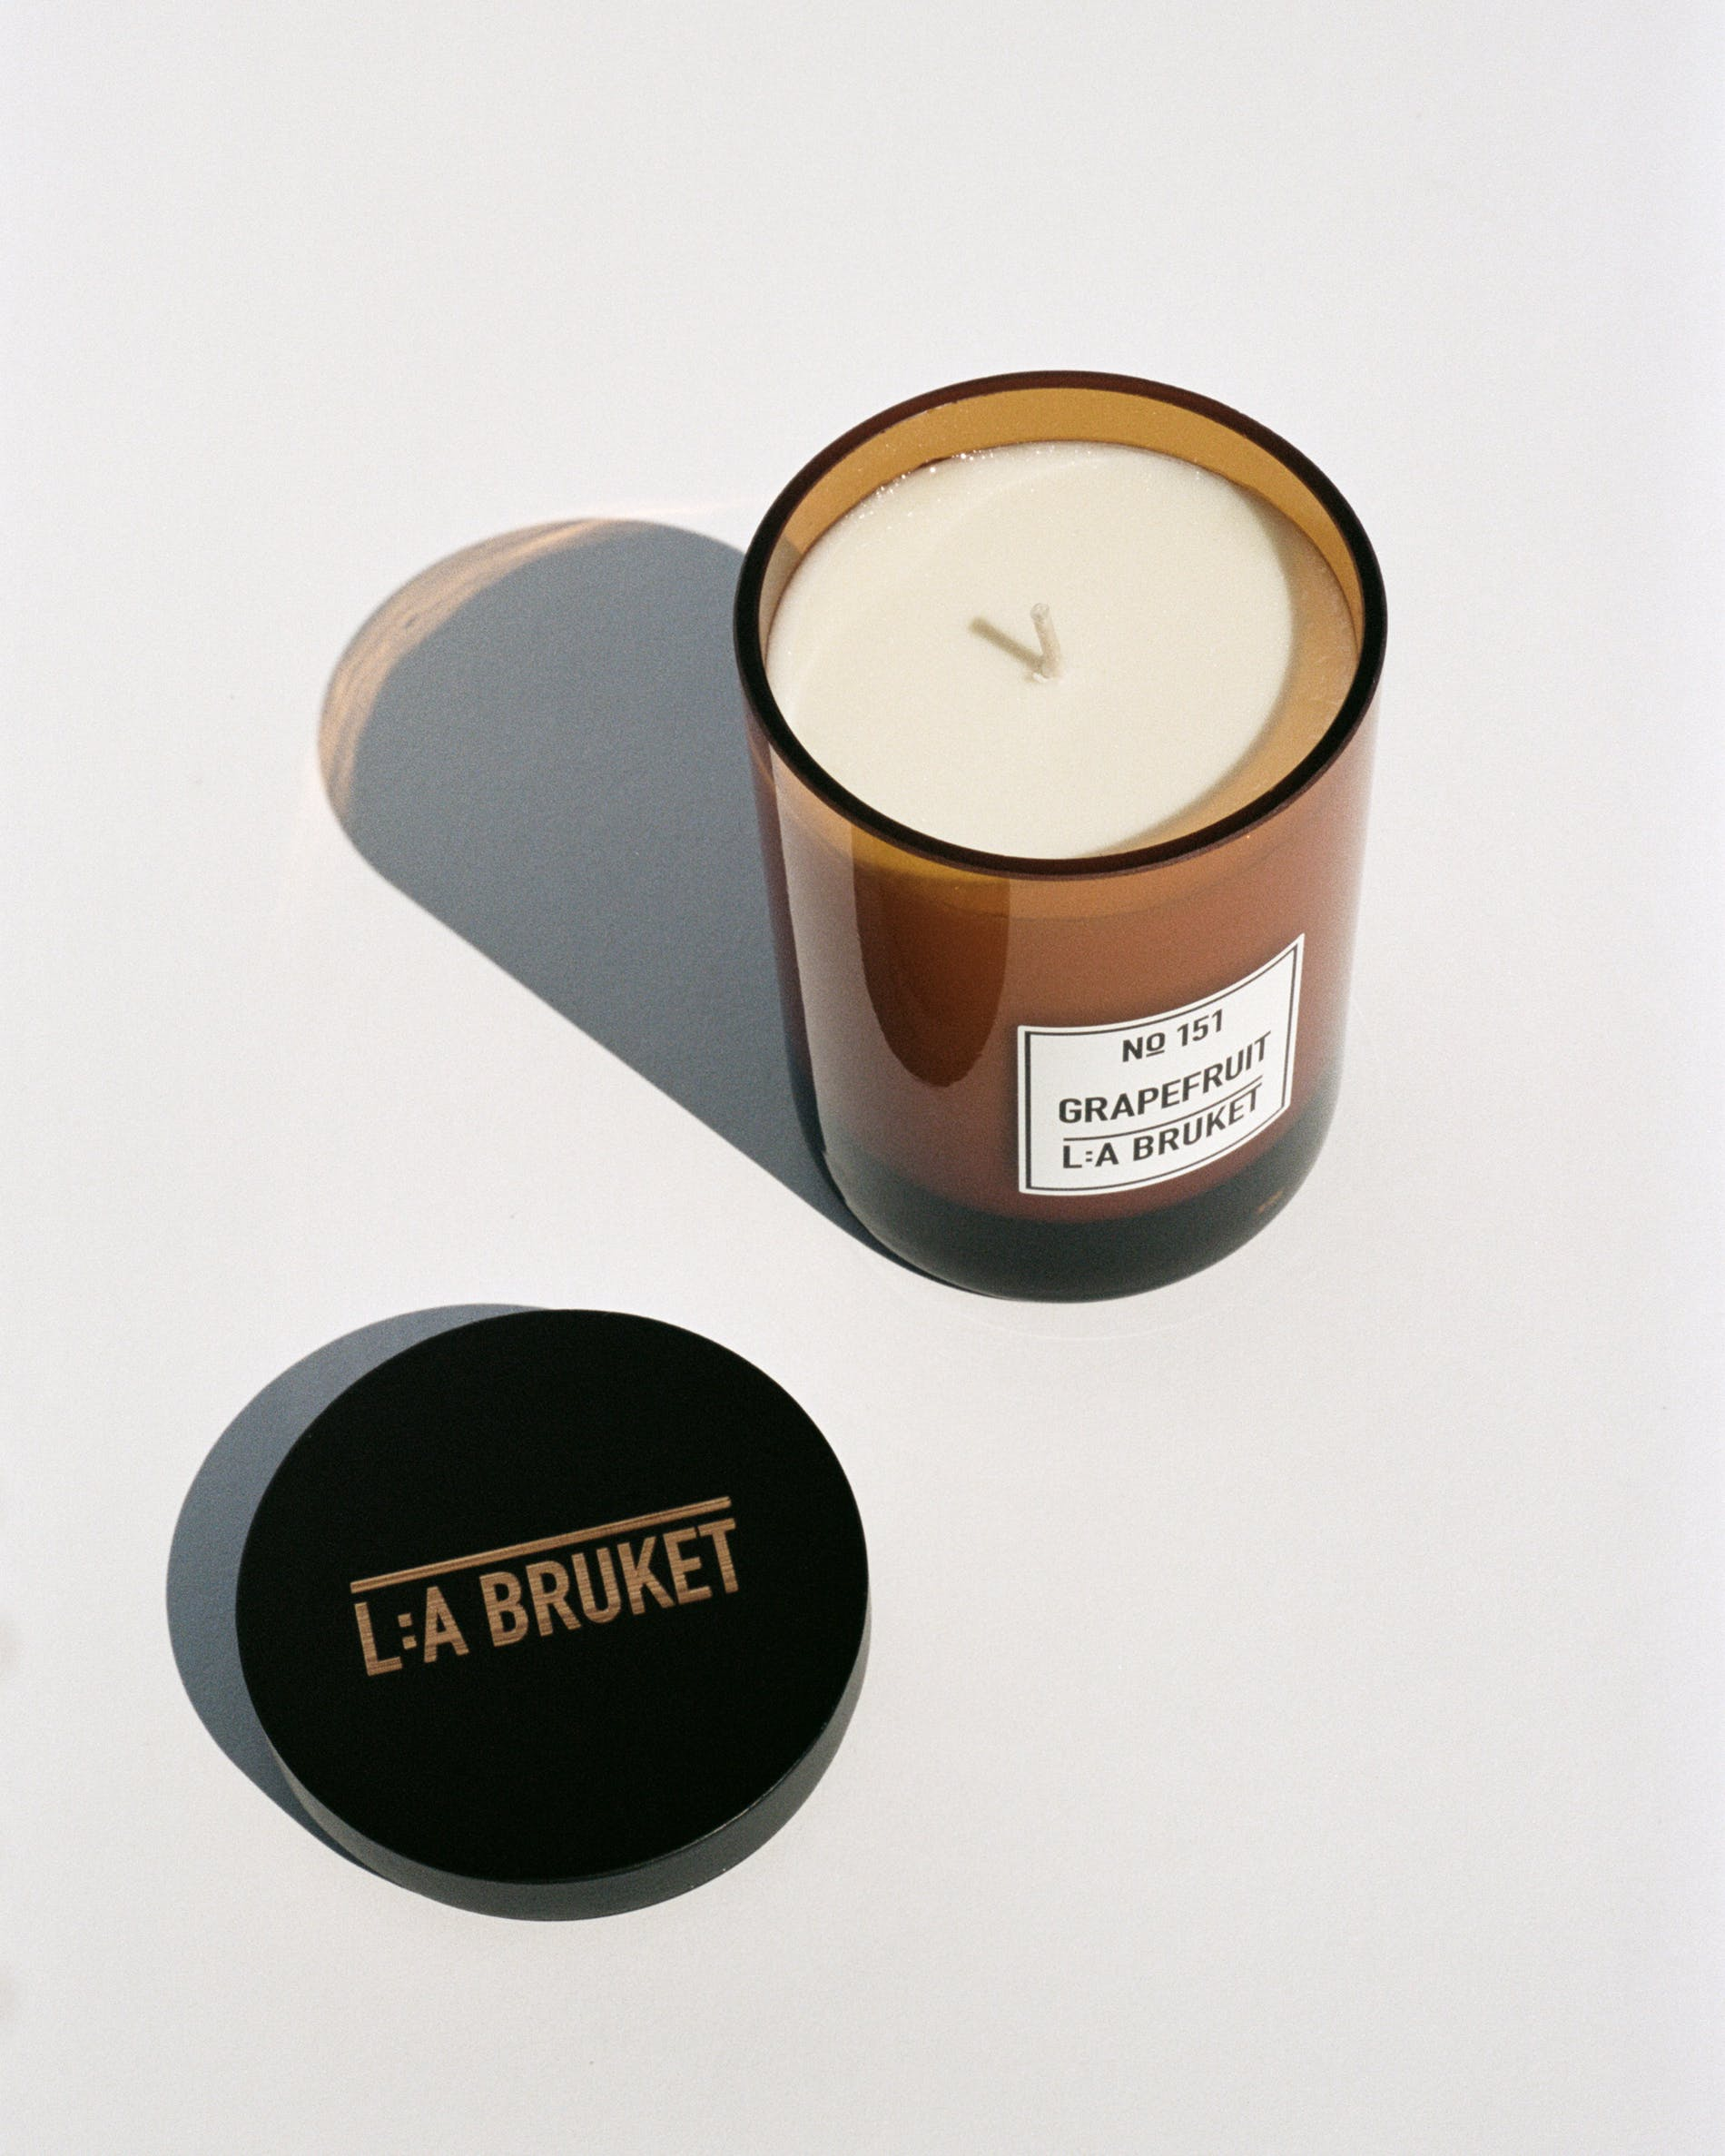 L:A Bruket 151 Scented Candle, Grapefruit, 260g